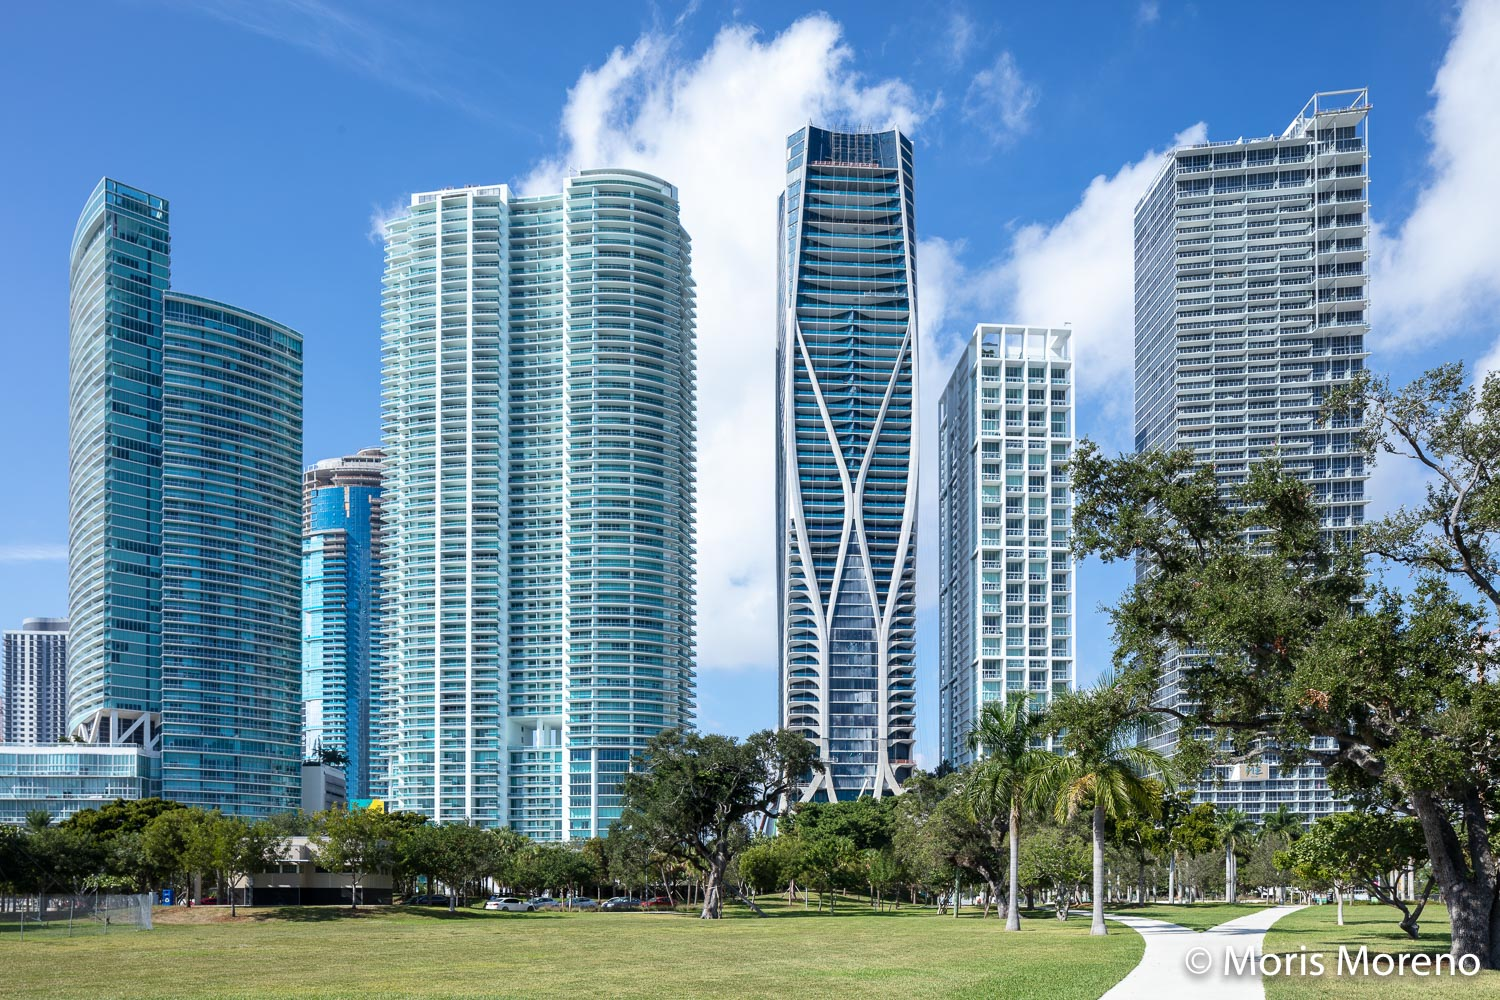 Groundbreaking buildings in Miami